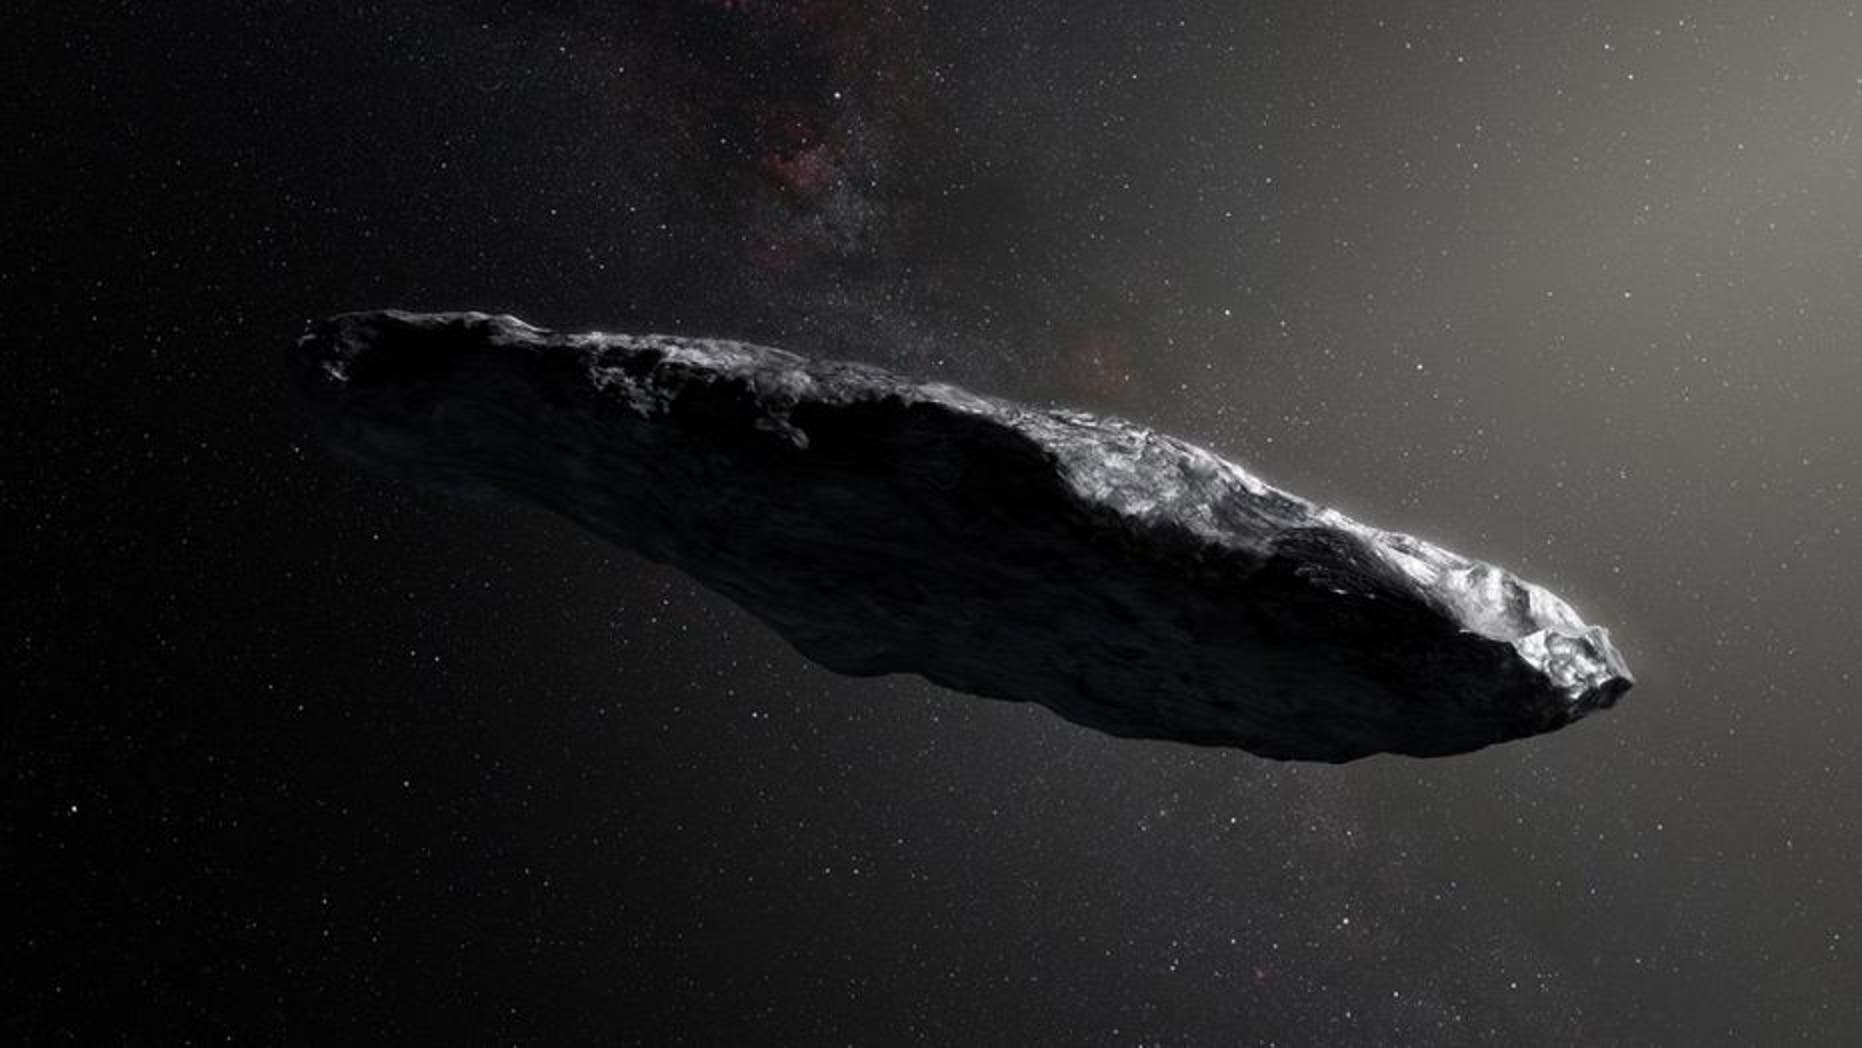 Cigar-Shaped Interstellar Object May Have Been Alien Probe, Harvard Paper Claims